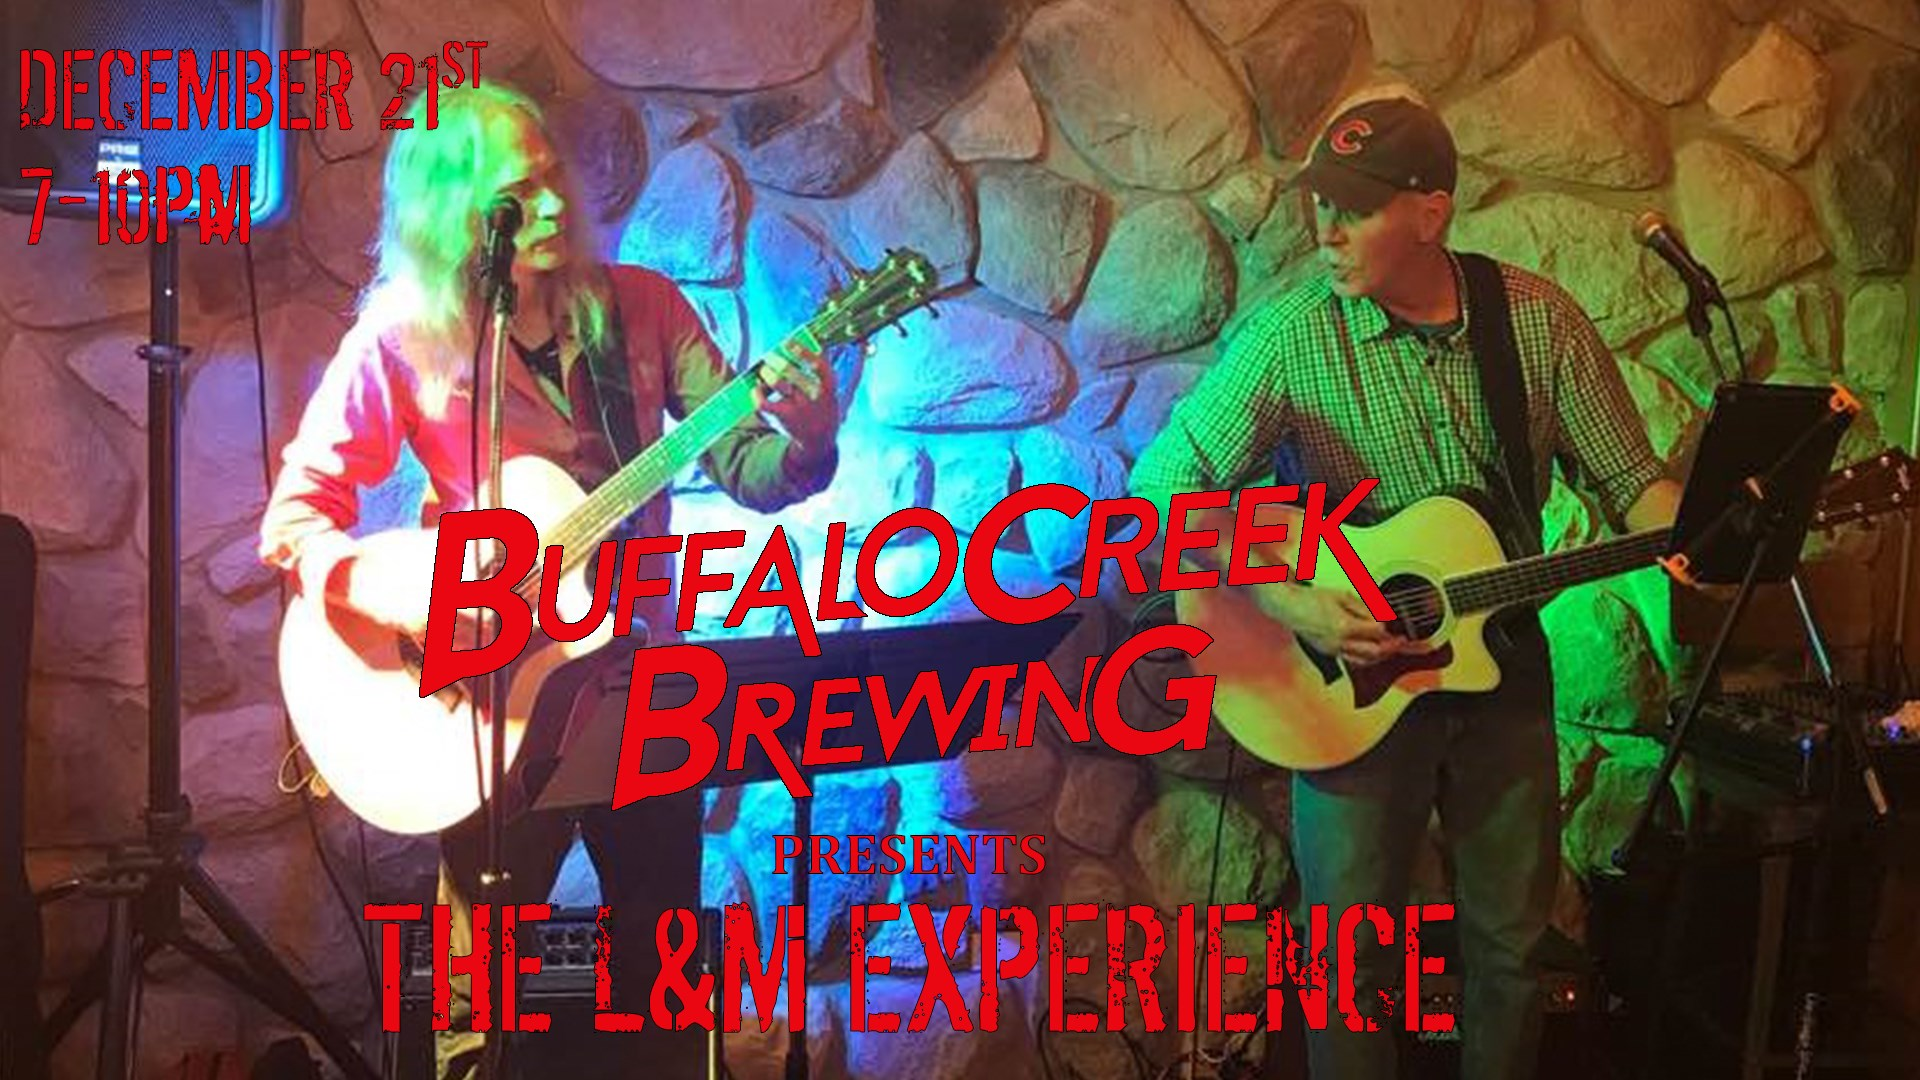 Buffalo Creek Brewing Pint of Music - The L&M Experience